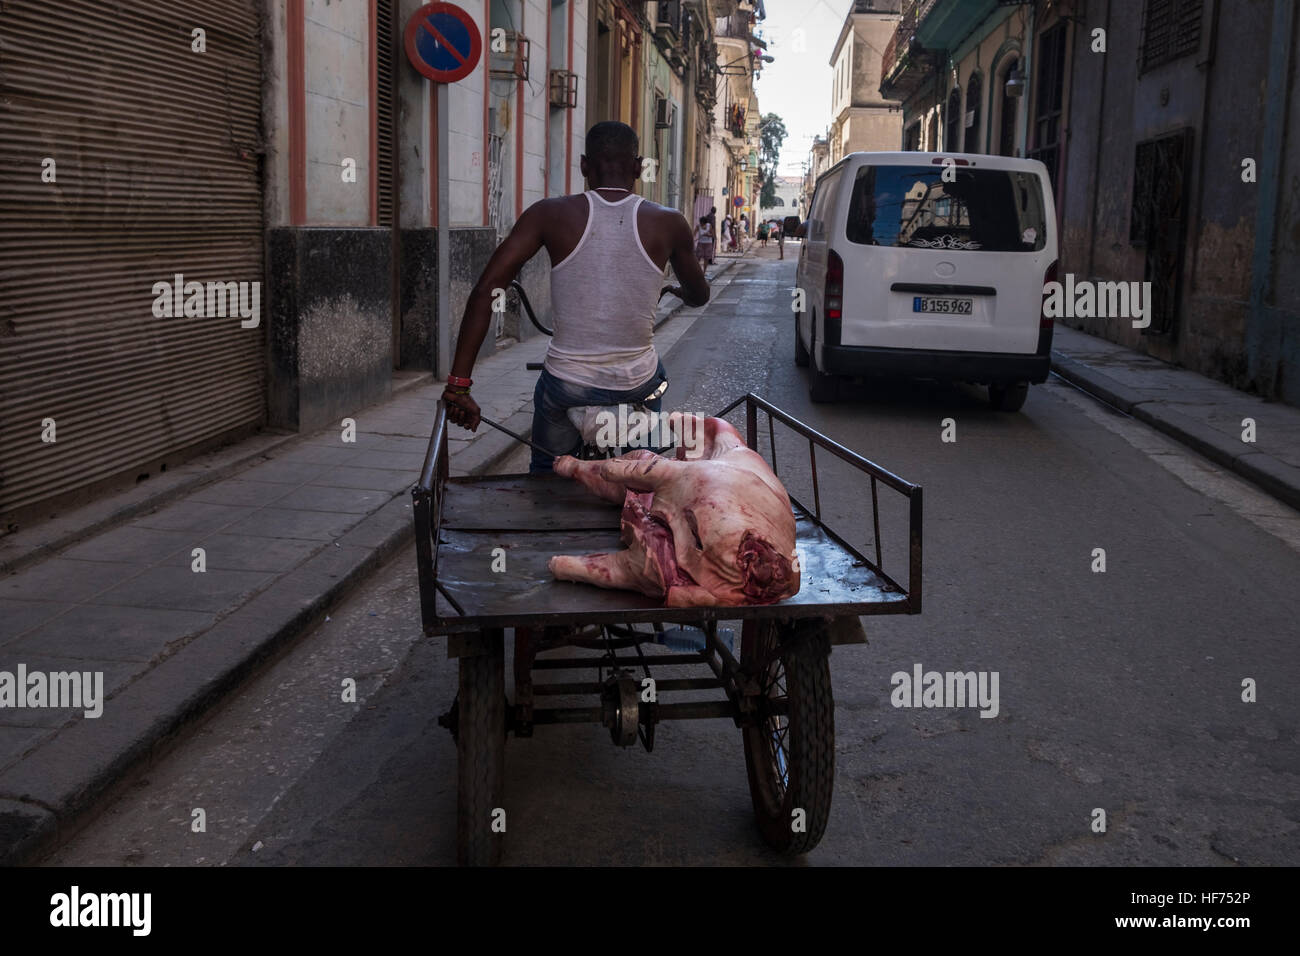 bike-and-trailer-with-carcass-of-a-pig-o